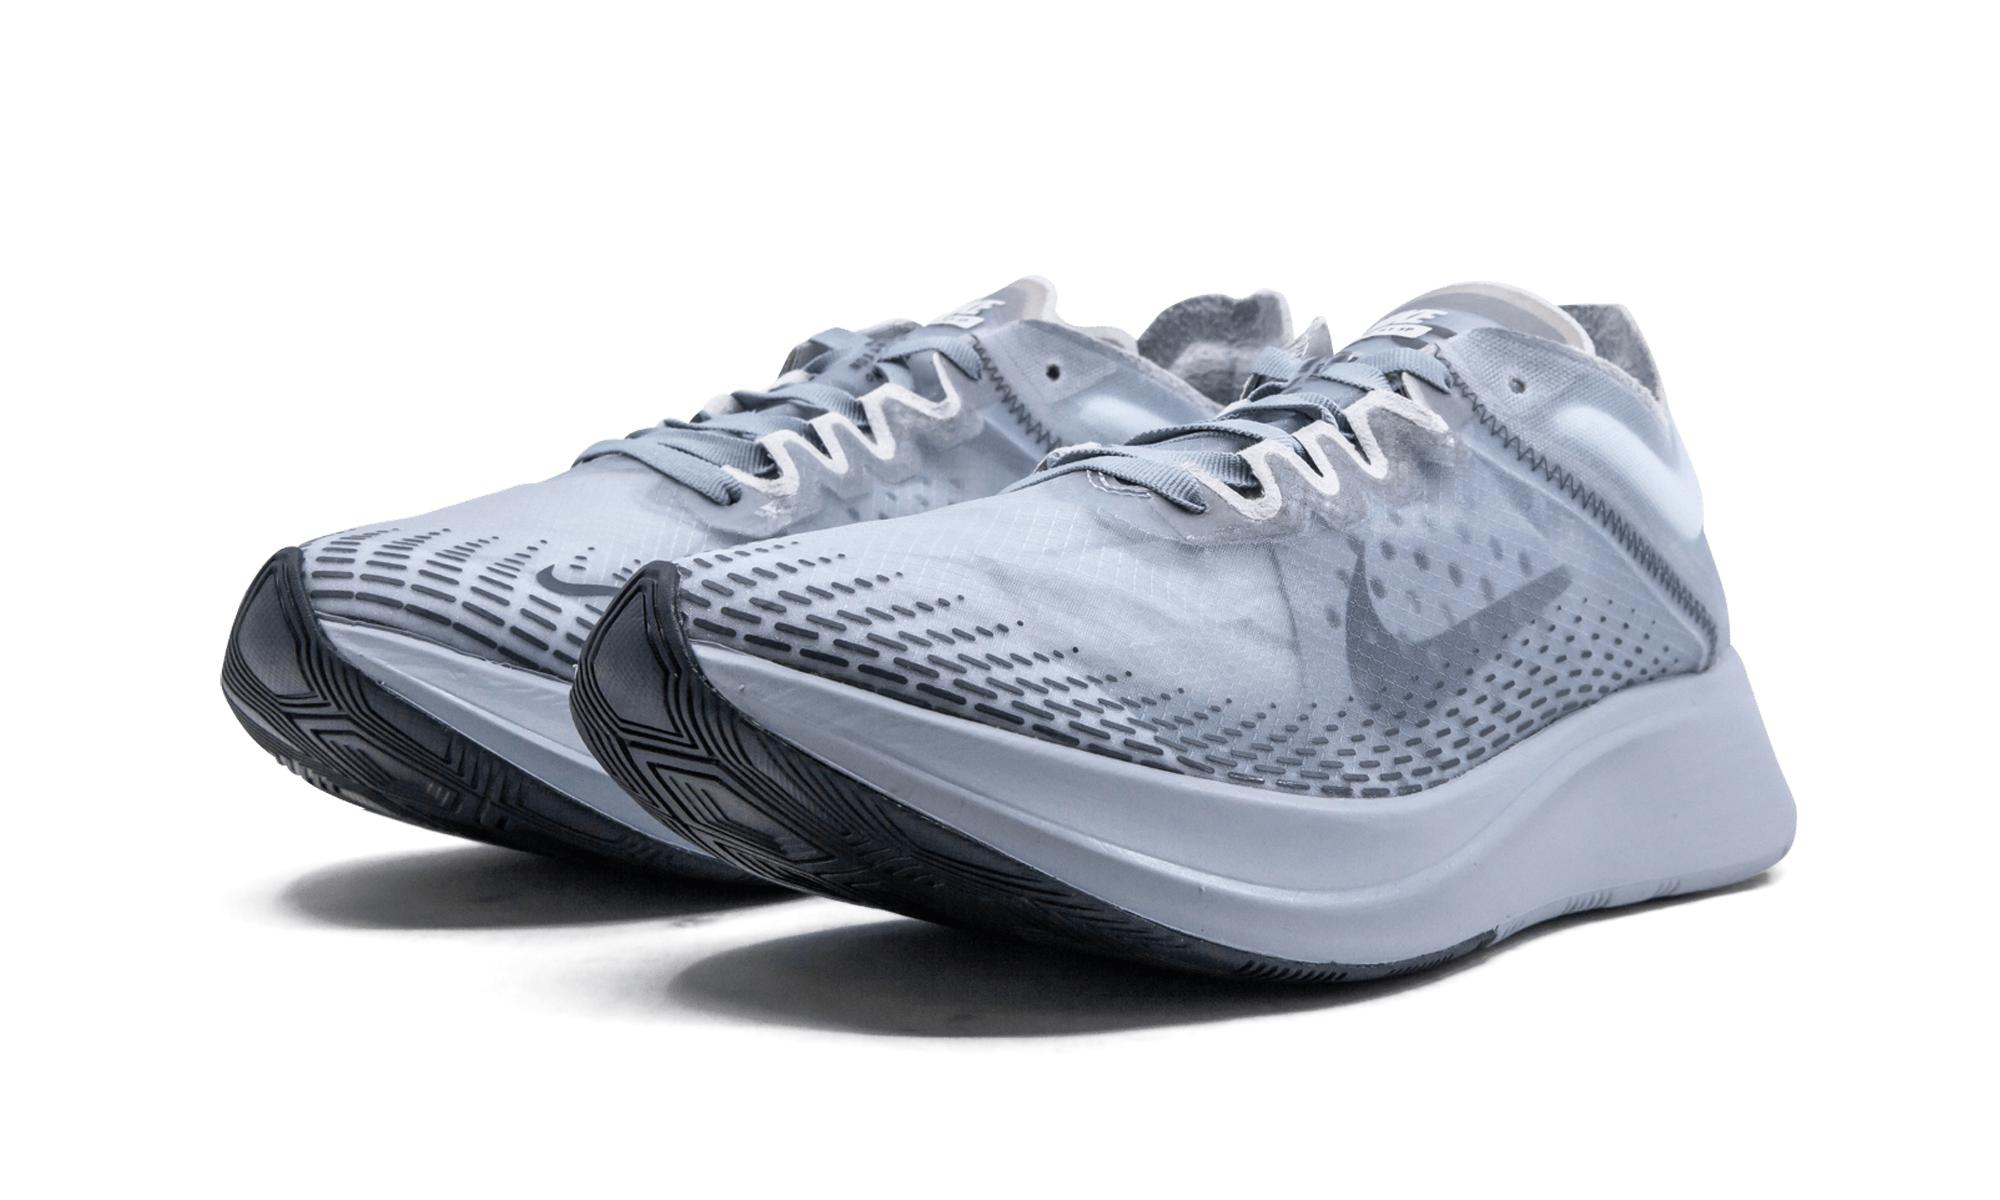 55be9a511 Nike - Blue Zoom Fly Sp Fast for Men - Lyst. View fullscreen